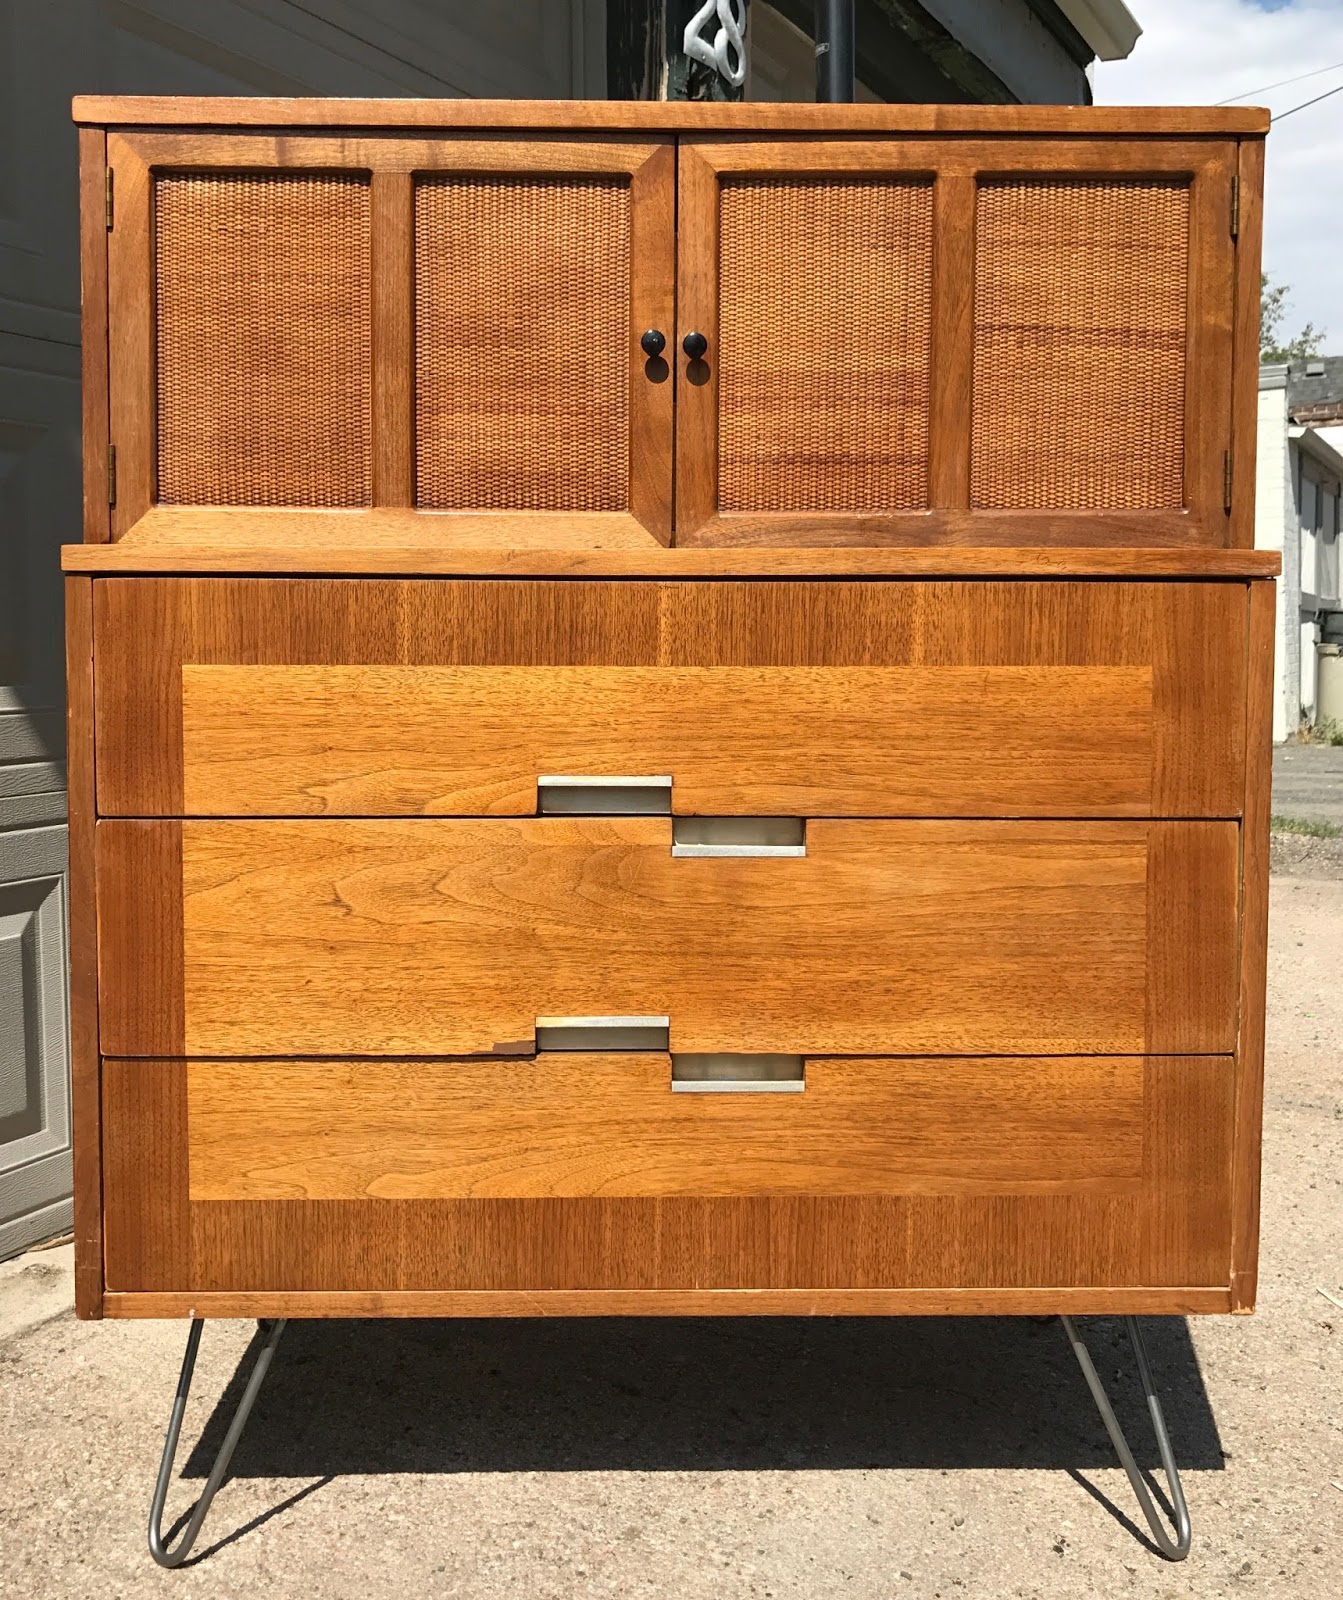 Great Mid Century Dresser By American Of Martinsville With Clic Silver Inlays And Recessed Drawer Pulls 45 X 19 36 Everything Works Well